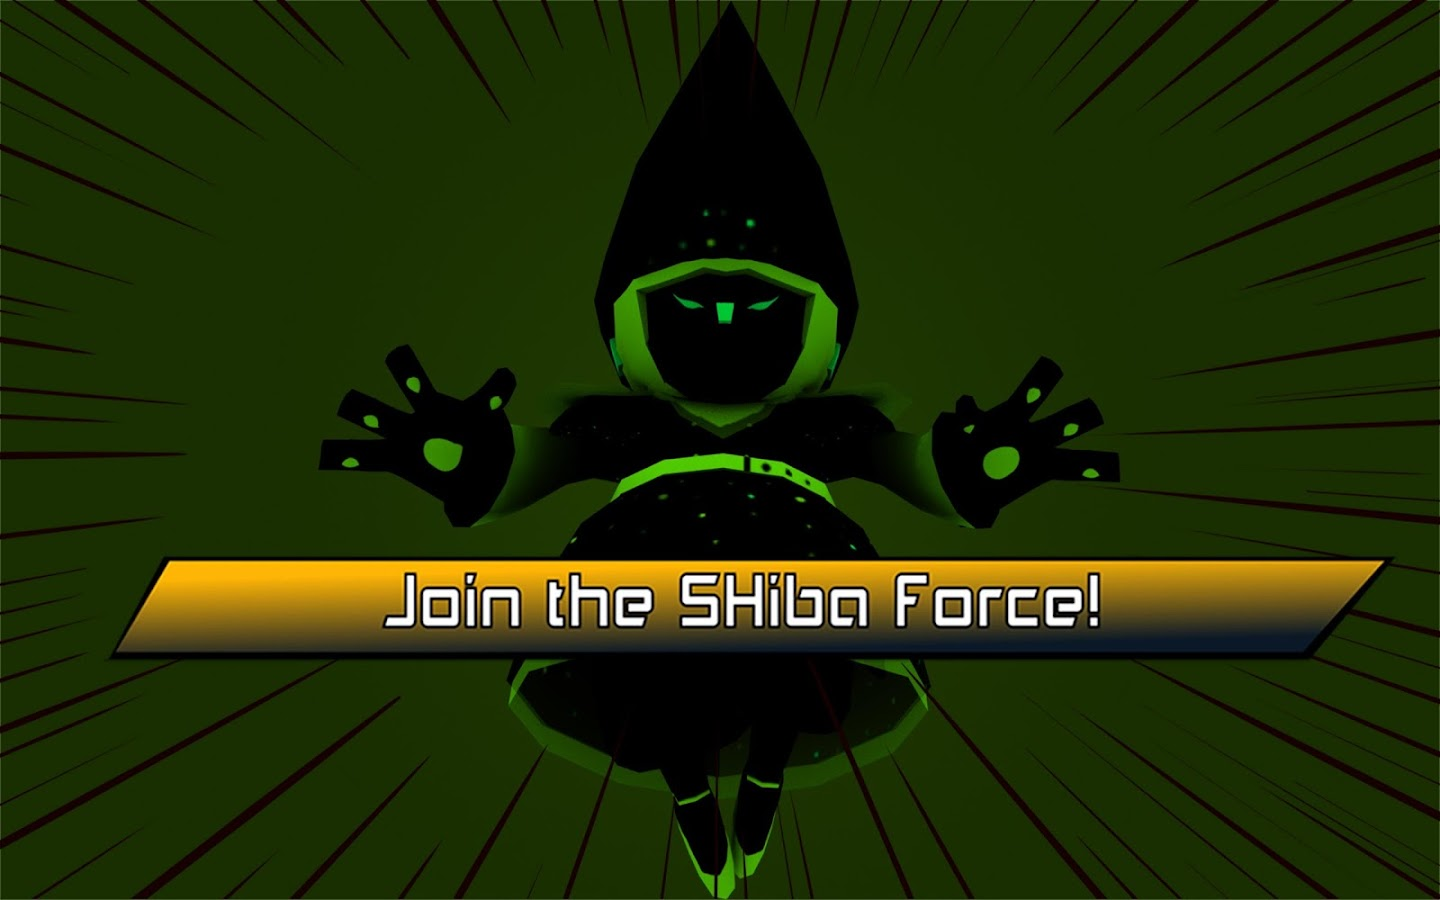 Mighty Swiping Shiba Force: captura de pantalla